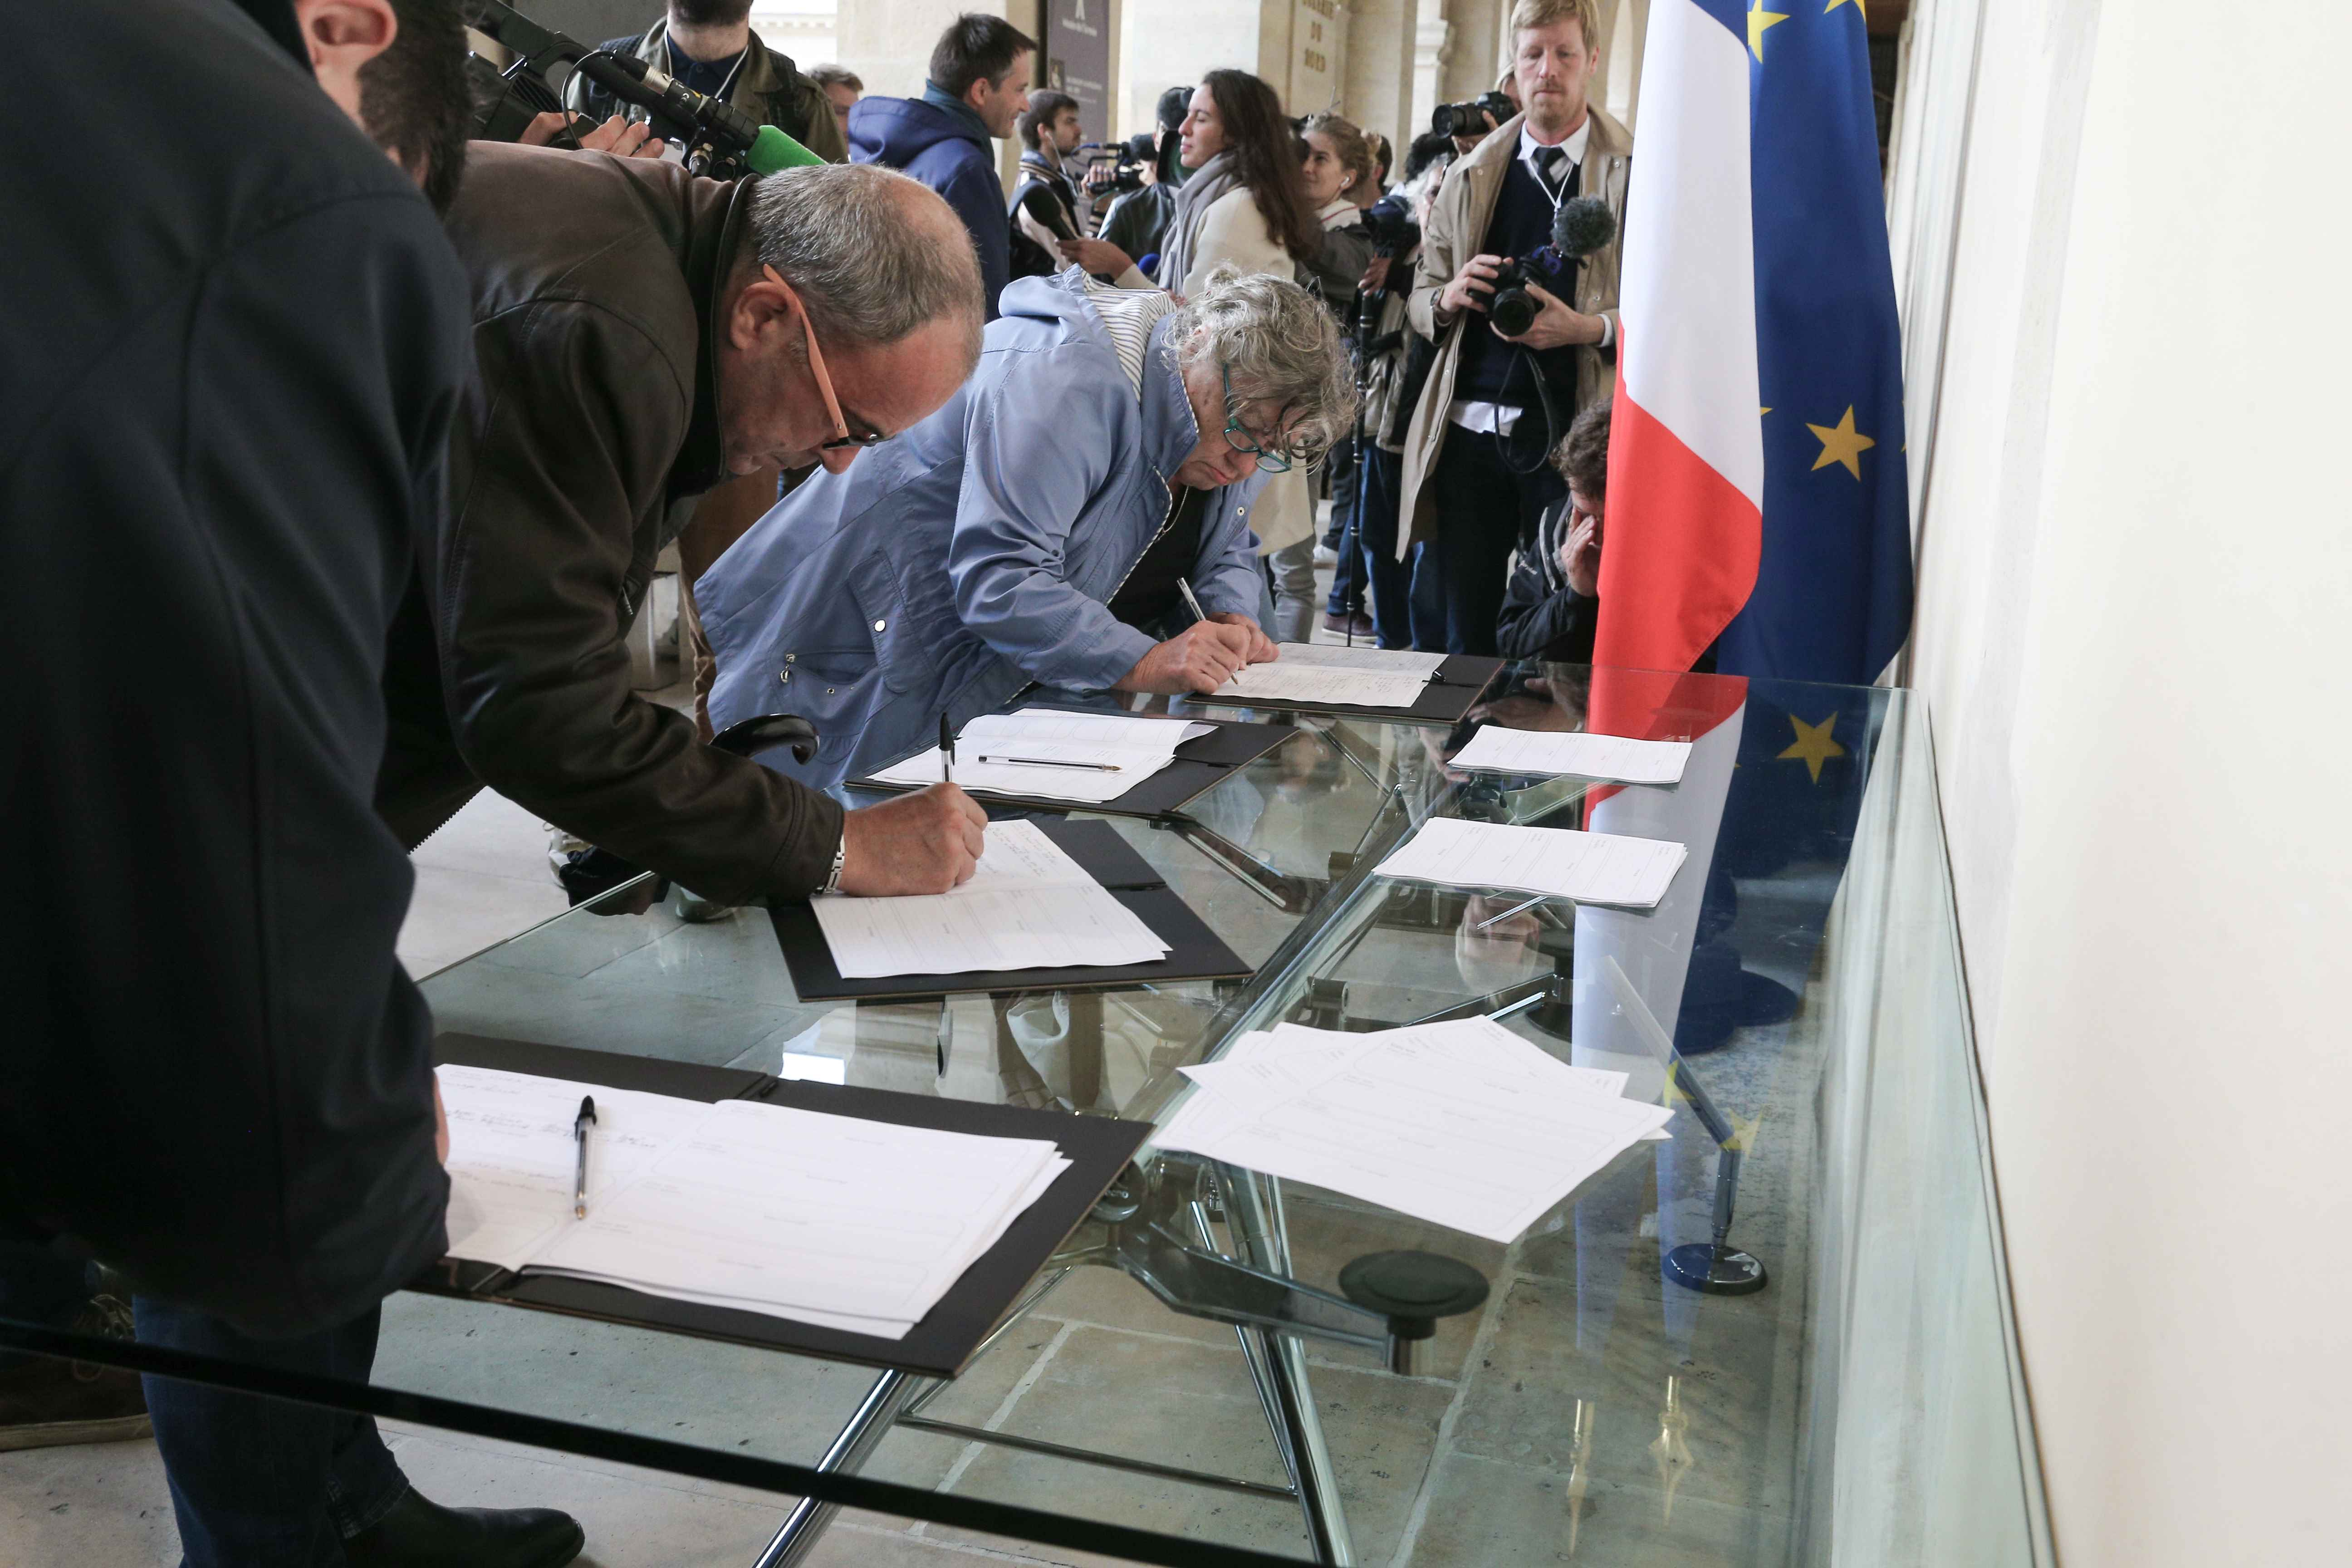 People sign condolence registers for late former French President Jacques Chirac at the Invalides memorial complex in central Paris on September 29, 2019. Jacques Chirac died on September 26 at the age of 86 after a long battle with deteriorating health, p